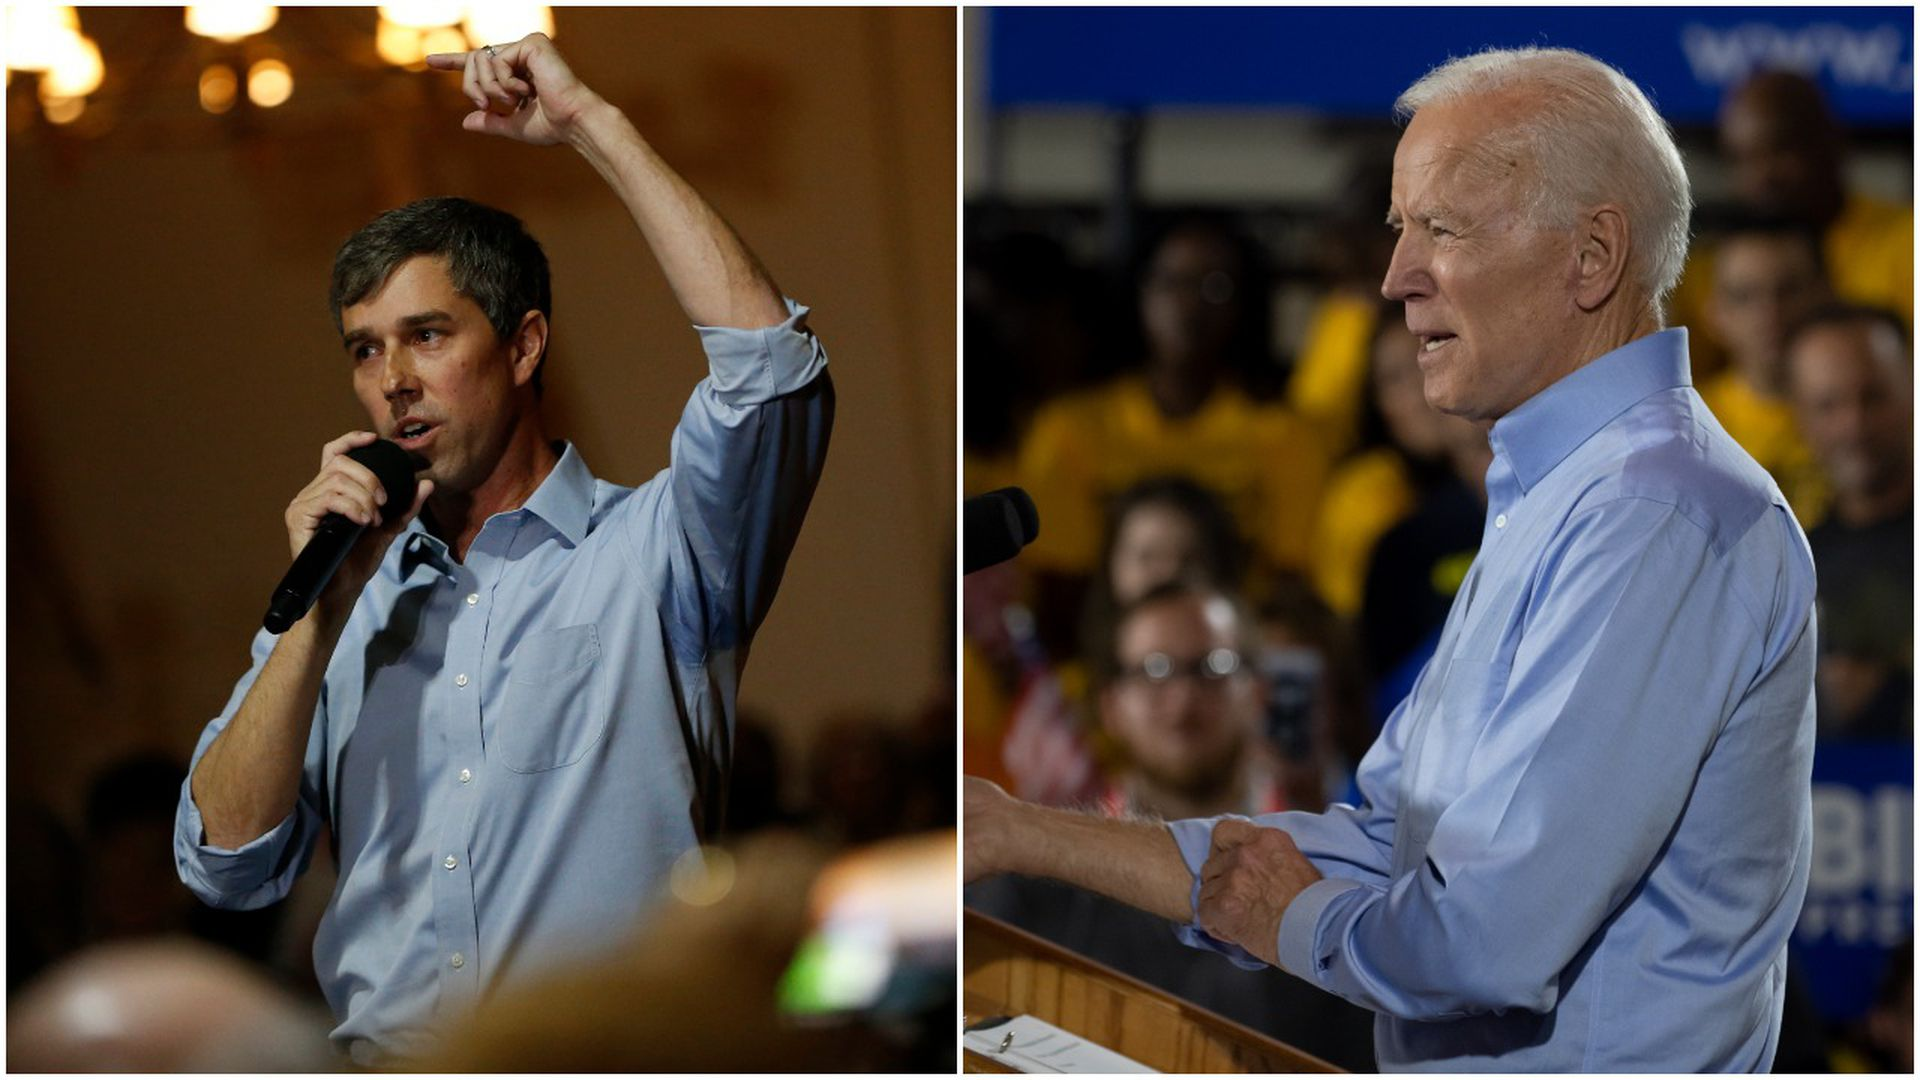 This image is a two-way split screen between Joe Biden and Beto O'Rourke